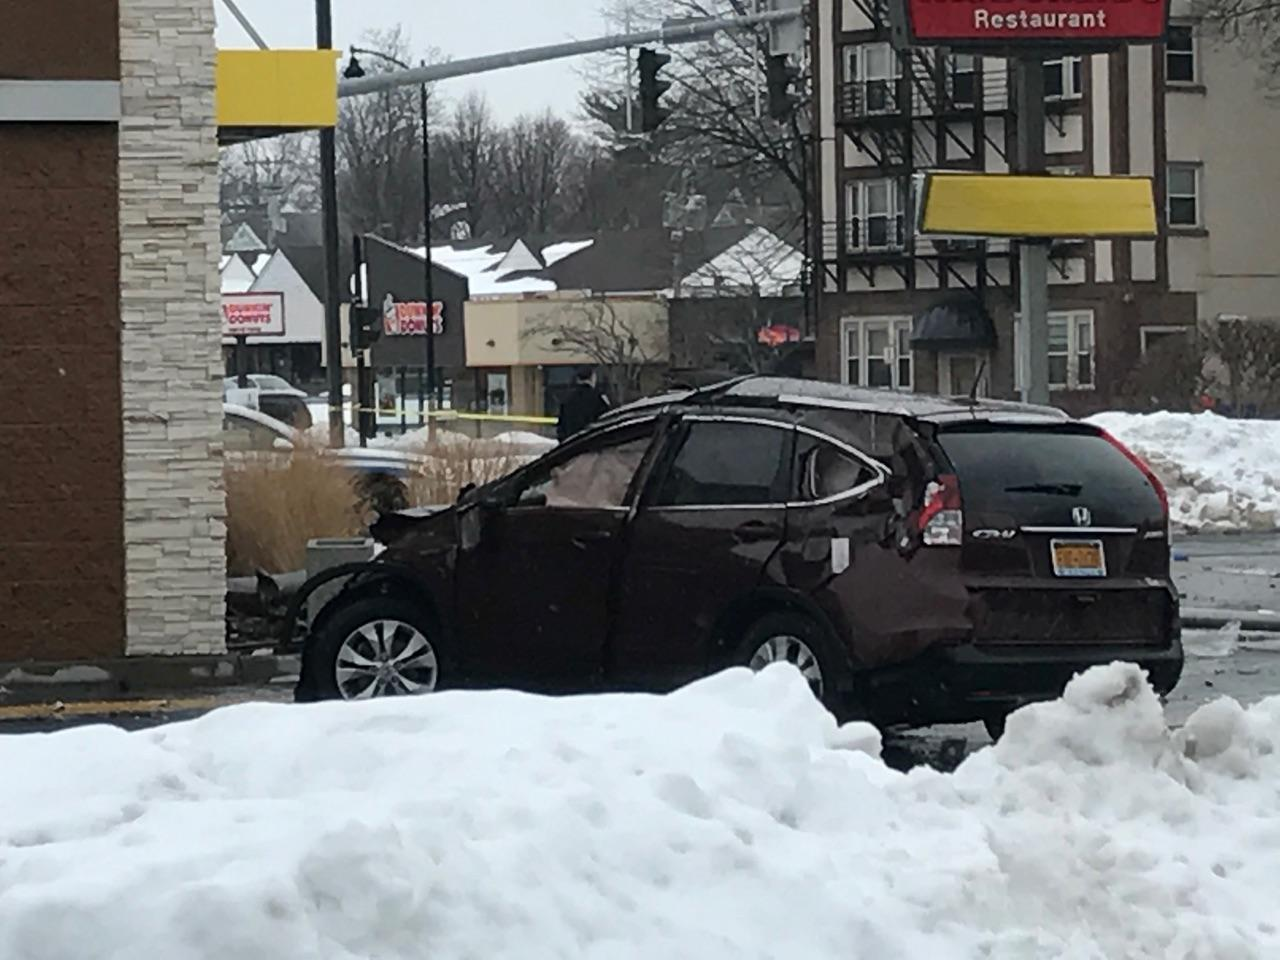 A man was seriously injured after crashing his car outside a McDonald's at the corner of Lexington and Lake Avenues Saturday afternoon.